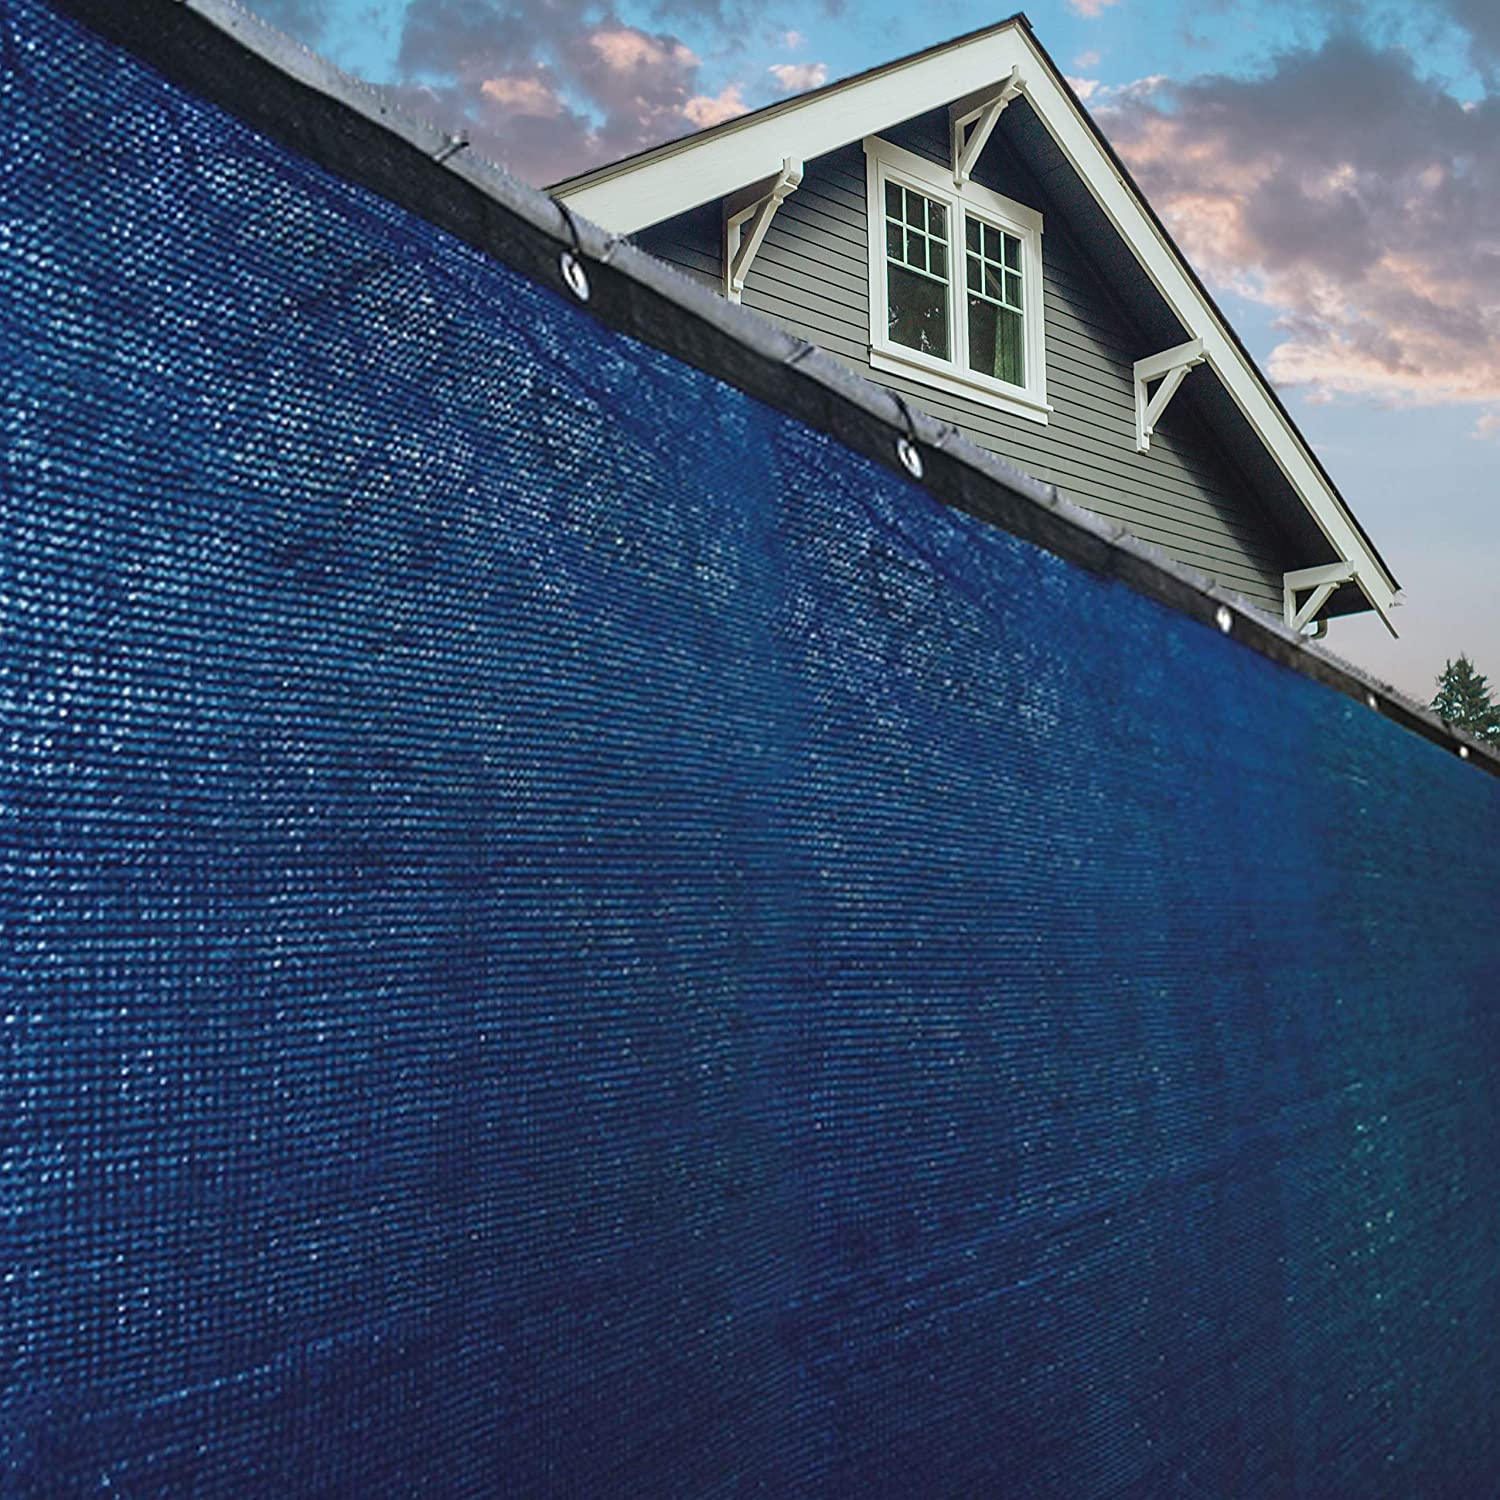 ALEKO PLK06150ABLUE Fence Privacy Screen Outdoor Backyard Fencing Windscreen Shade Cover Mesh Fabric with Grommets 6 x 150 Feet Blue